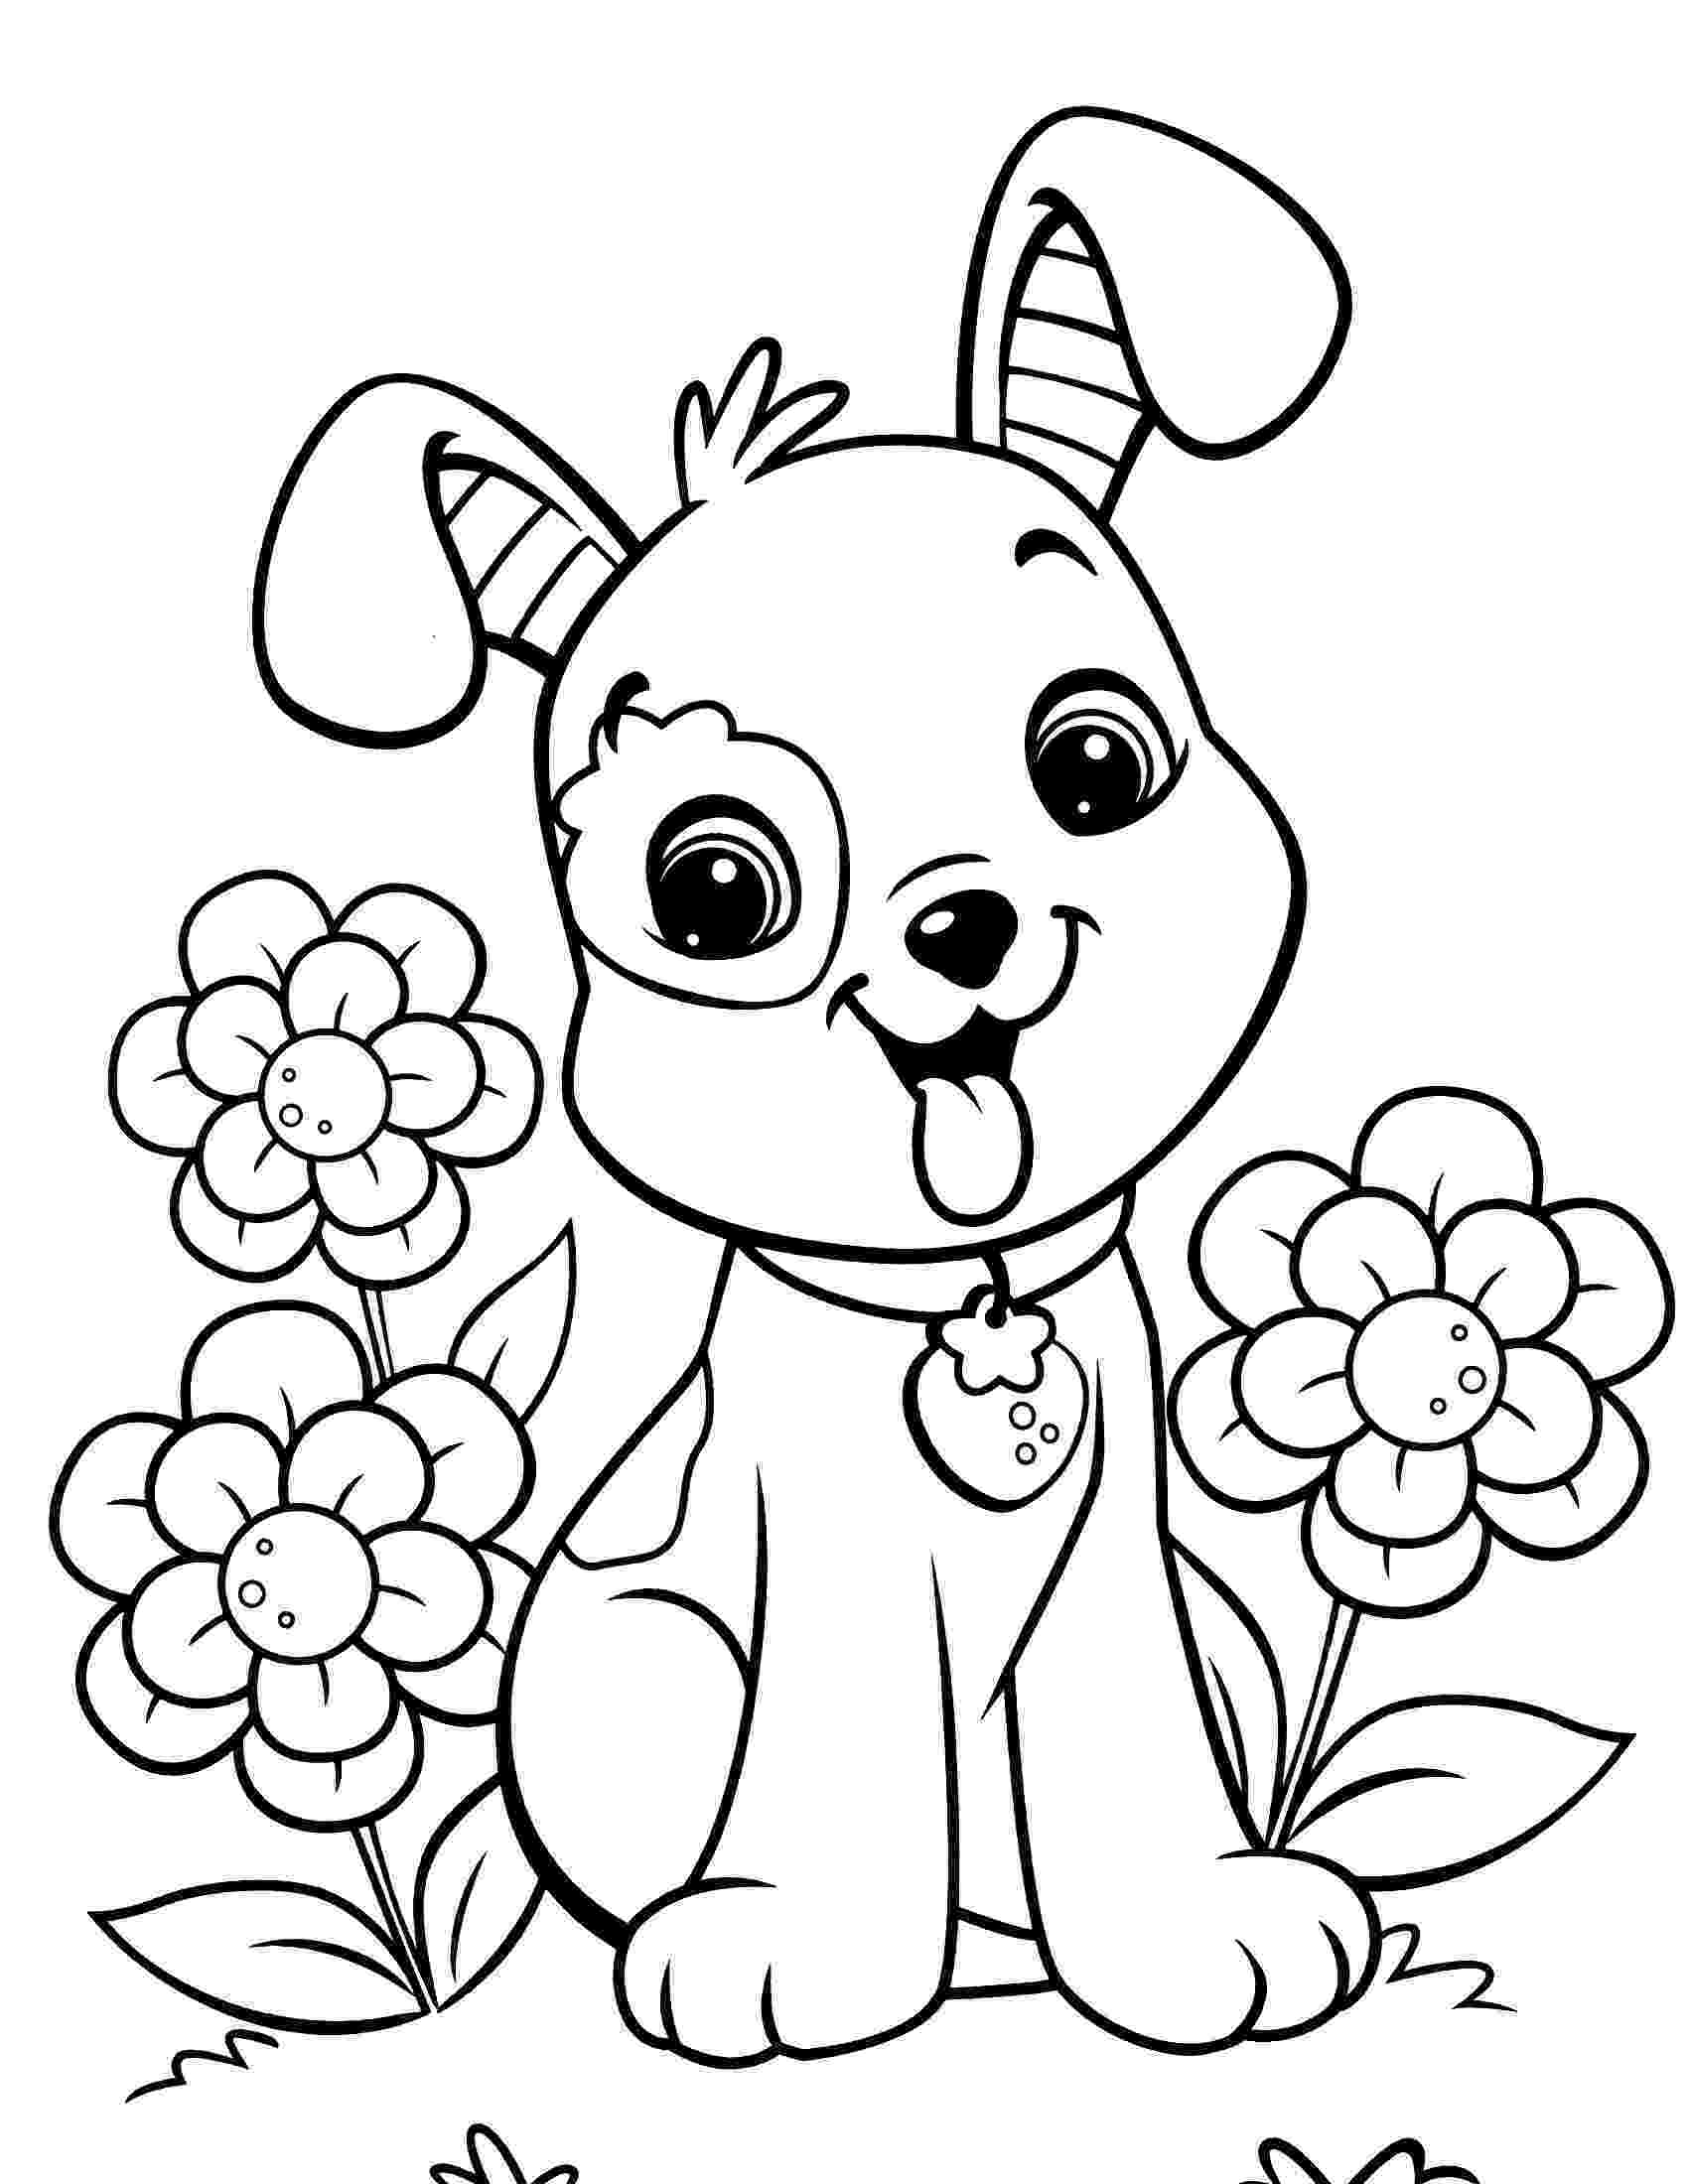 coloring pages of a dog free printable dog coloring pages for kids a coloring of pages dog